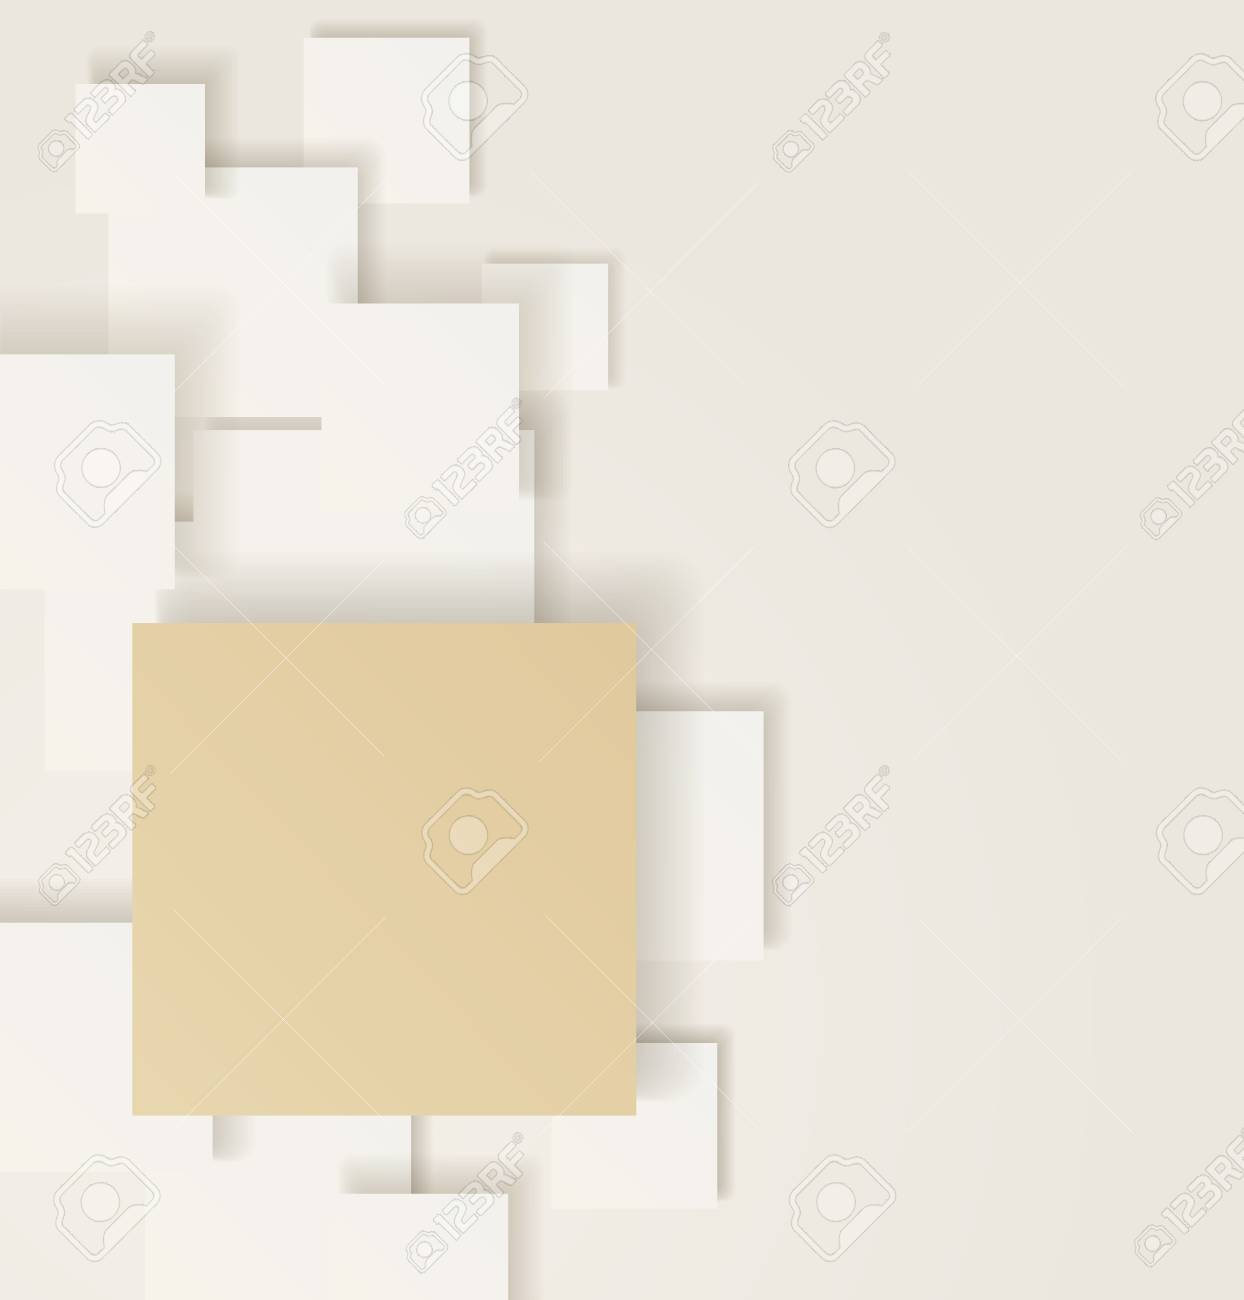 Light overlapping squares  Gold concept Illustration Stock Vector - 17334819